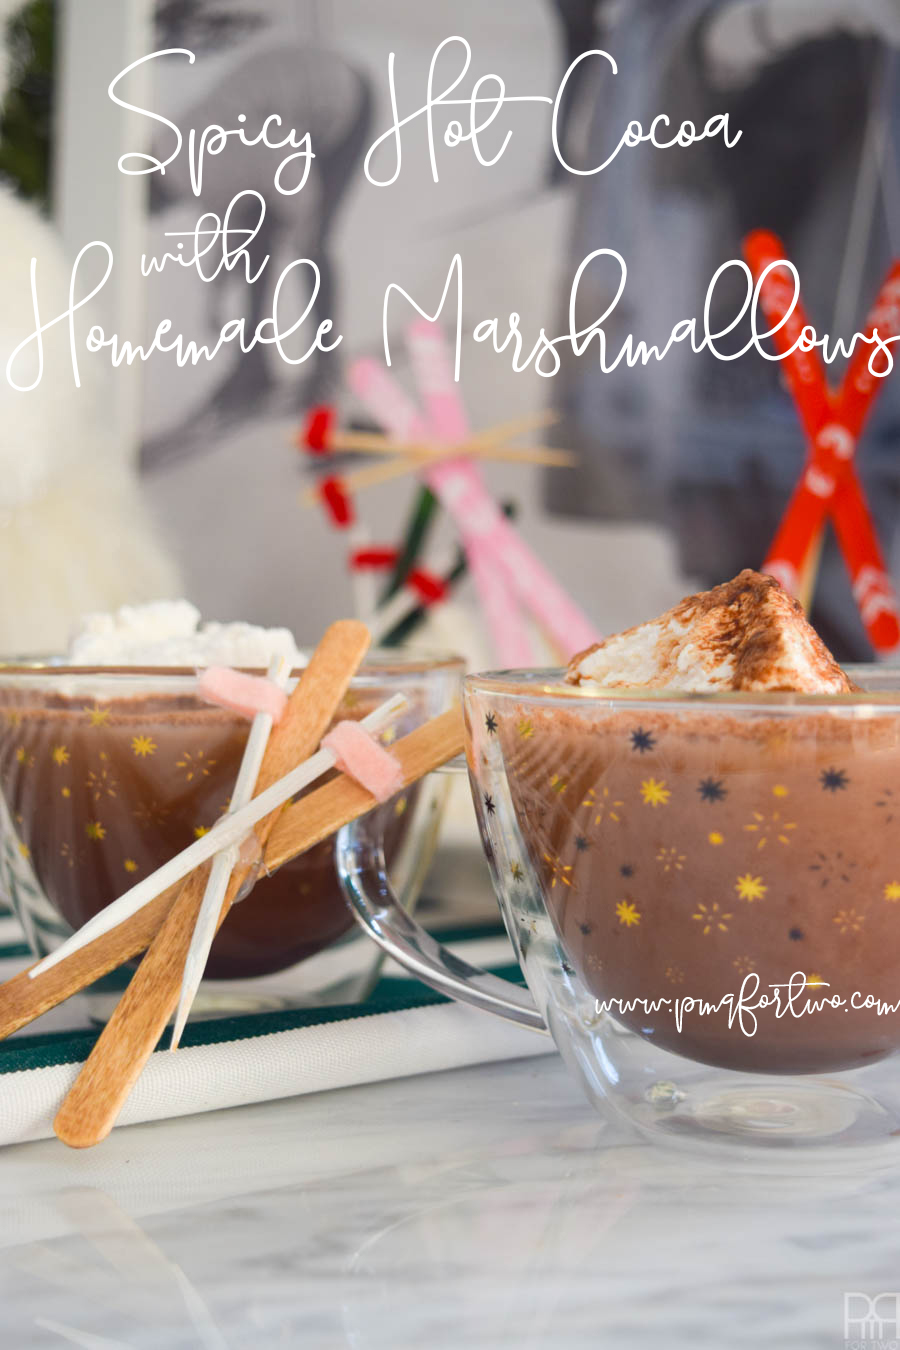 Cuddle up with a warm cup of Spicy Hot Chocolate & Homemade Marshmallows this winter. The recipe is dead simple, super tasty, and very appropriate for winter activities.